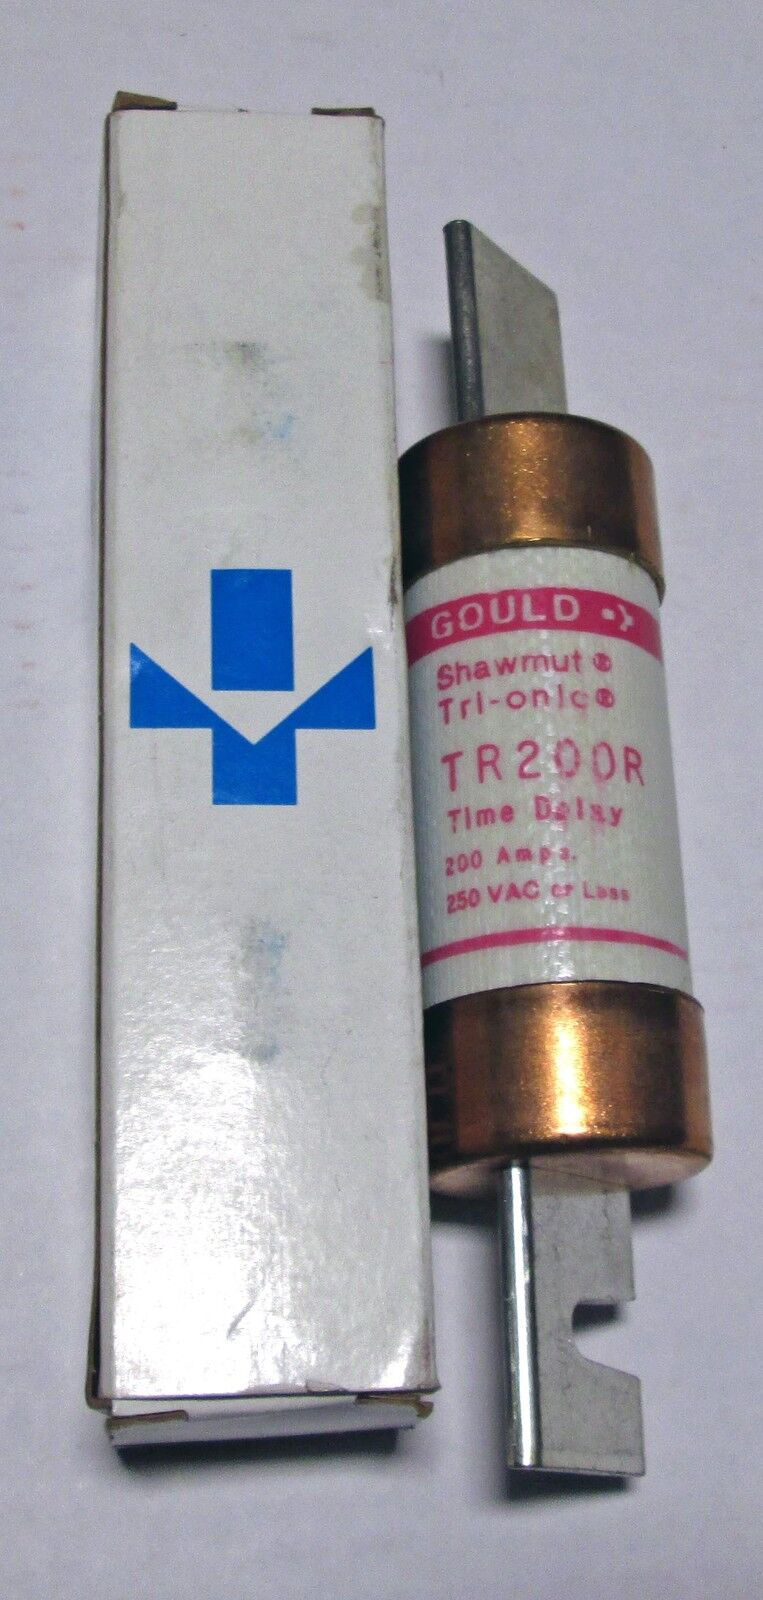 Gould Shawmut Tri Onic 200 Amp Fuse 240 Volt Tr200r Nib New In Box 1 Of 1only Available